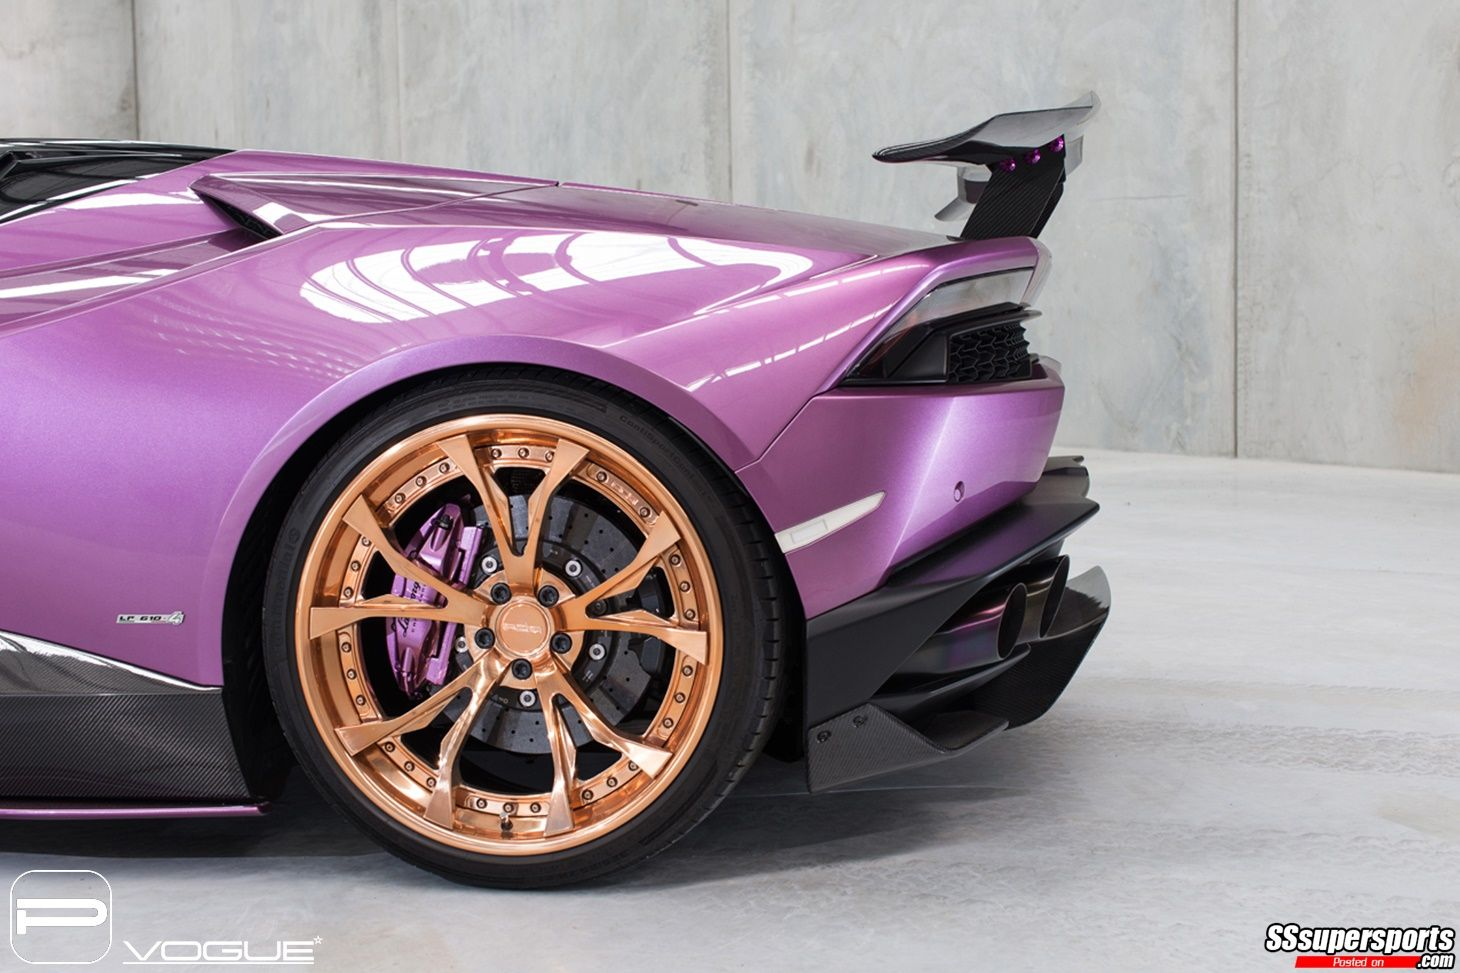 6 Purple Lamborghini Huracan Spyder Gold Rose Pur Wheels Rear Wheel